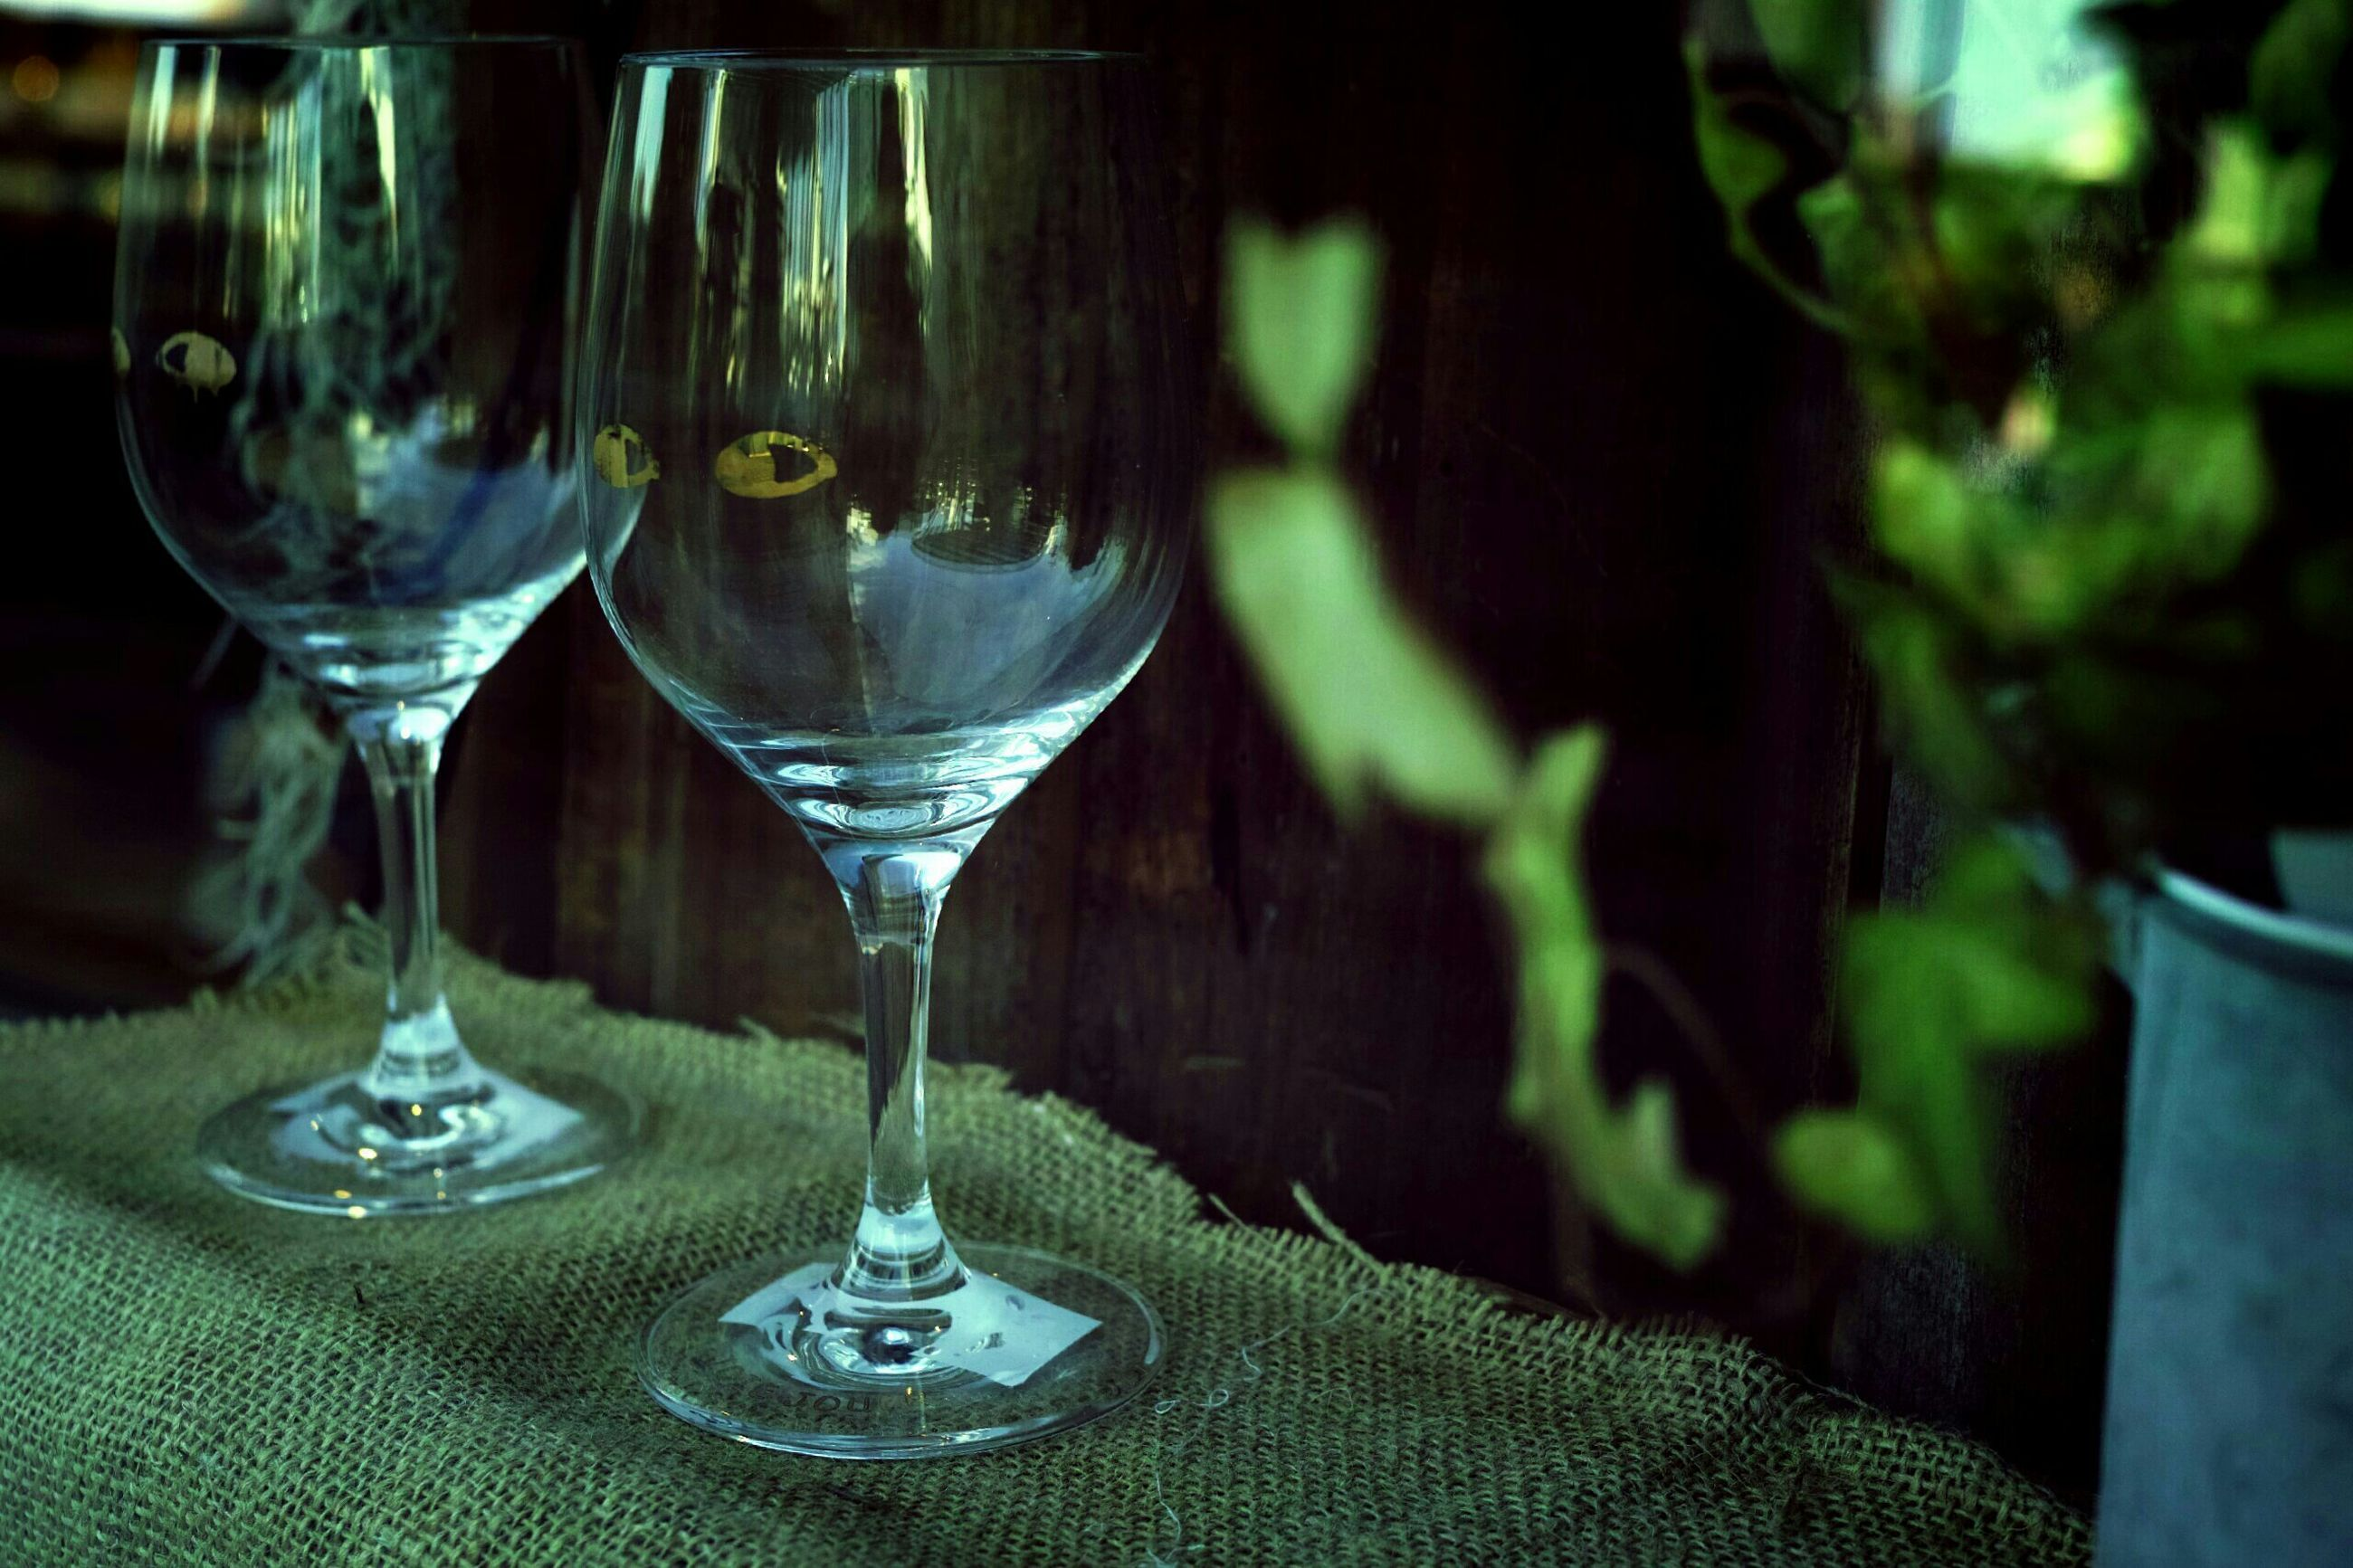 indoors, glass - material, drinking glass, table, wineglass, transparent, close-up, still life, focus on foreground, drink, food and drink, refreshment, glass, wine, alcohol, restaurant, water, bottle, freshness, no people